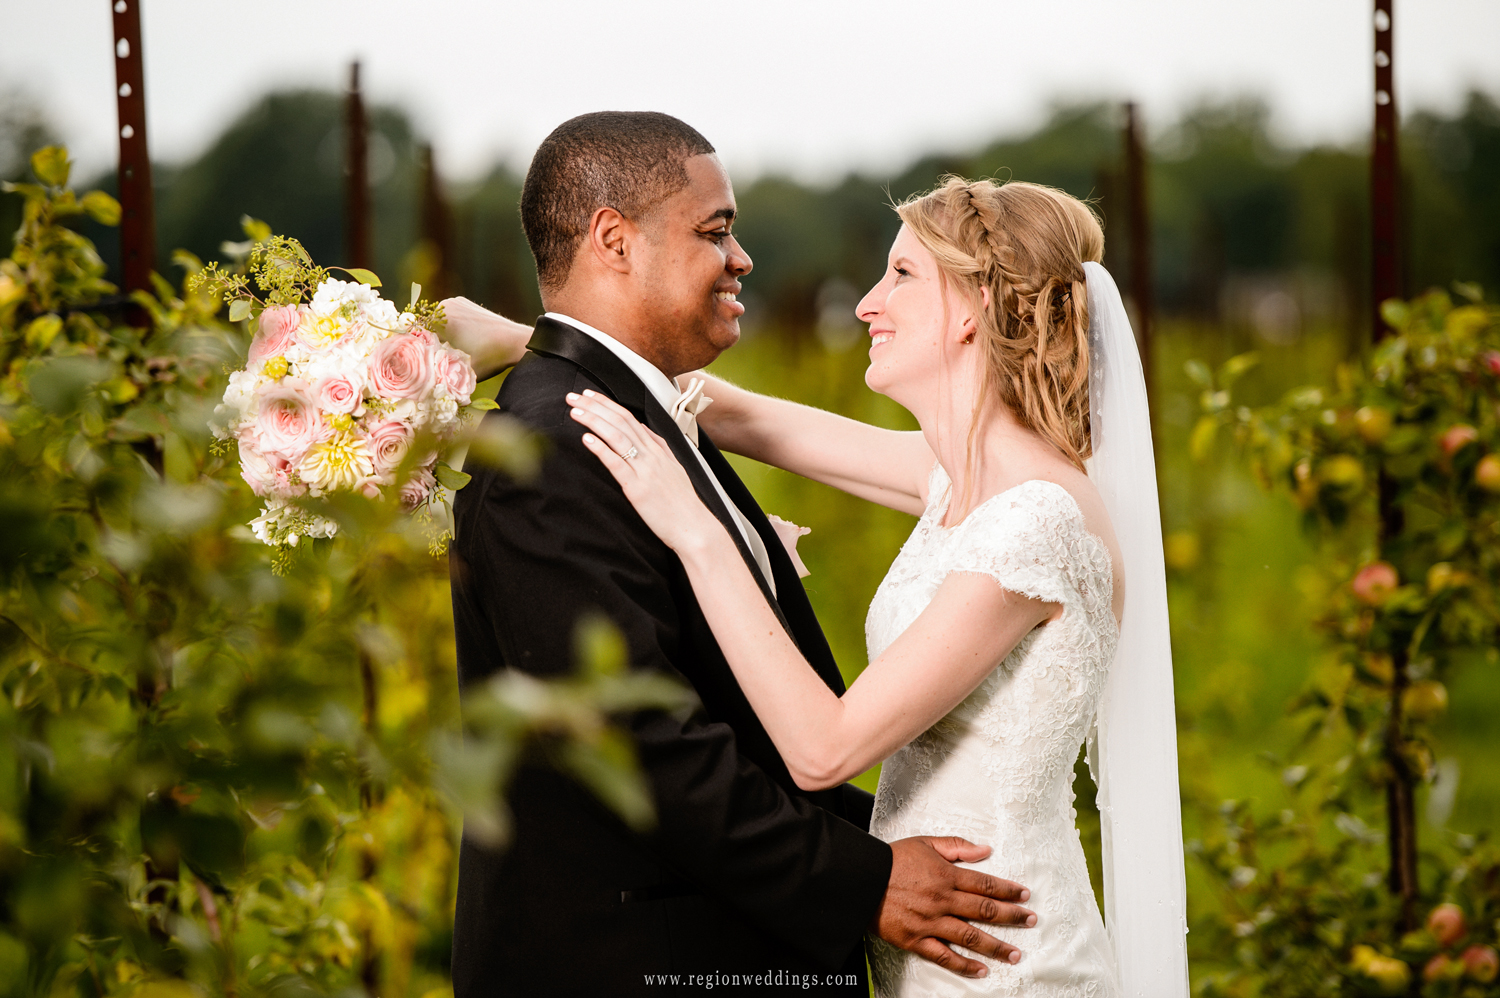 The bride and groom embrace deep within the apple orchards at County Line Orchard.